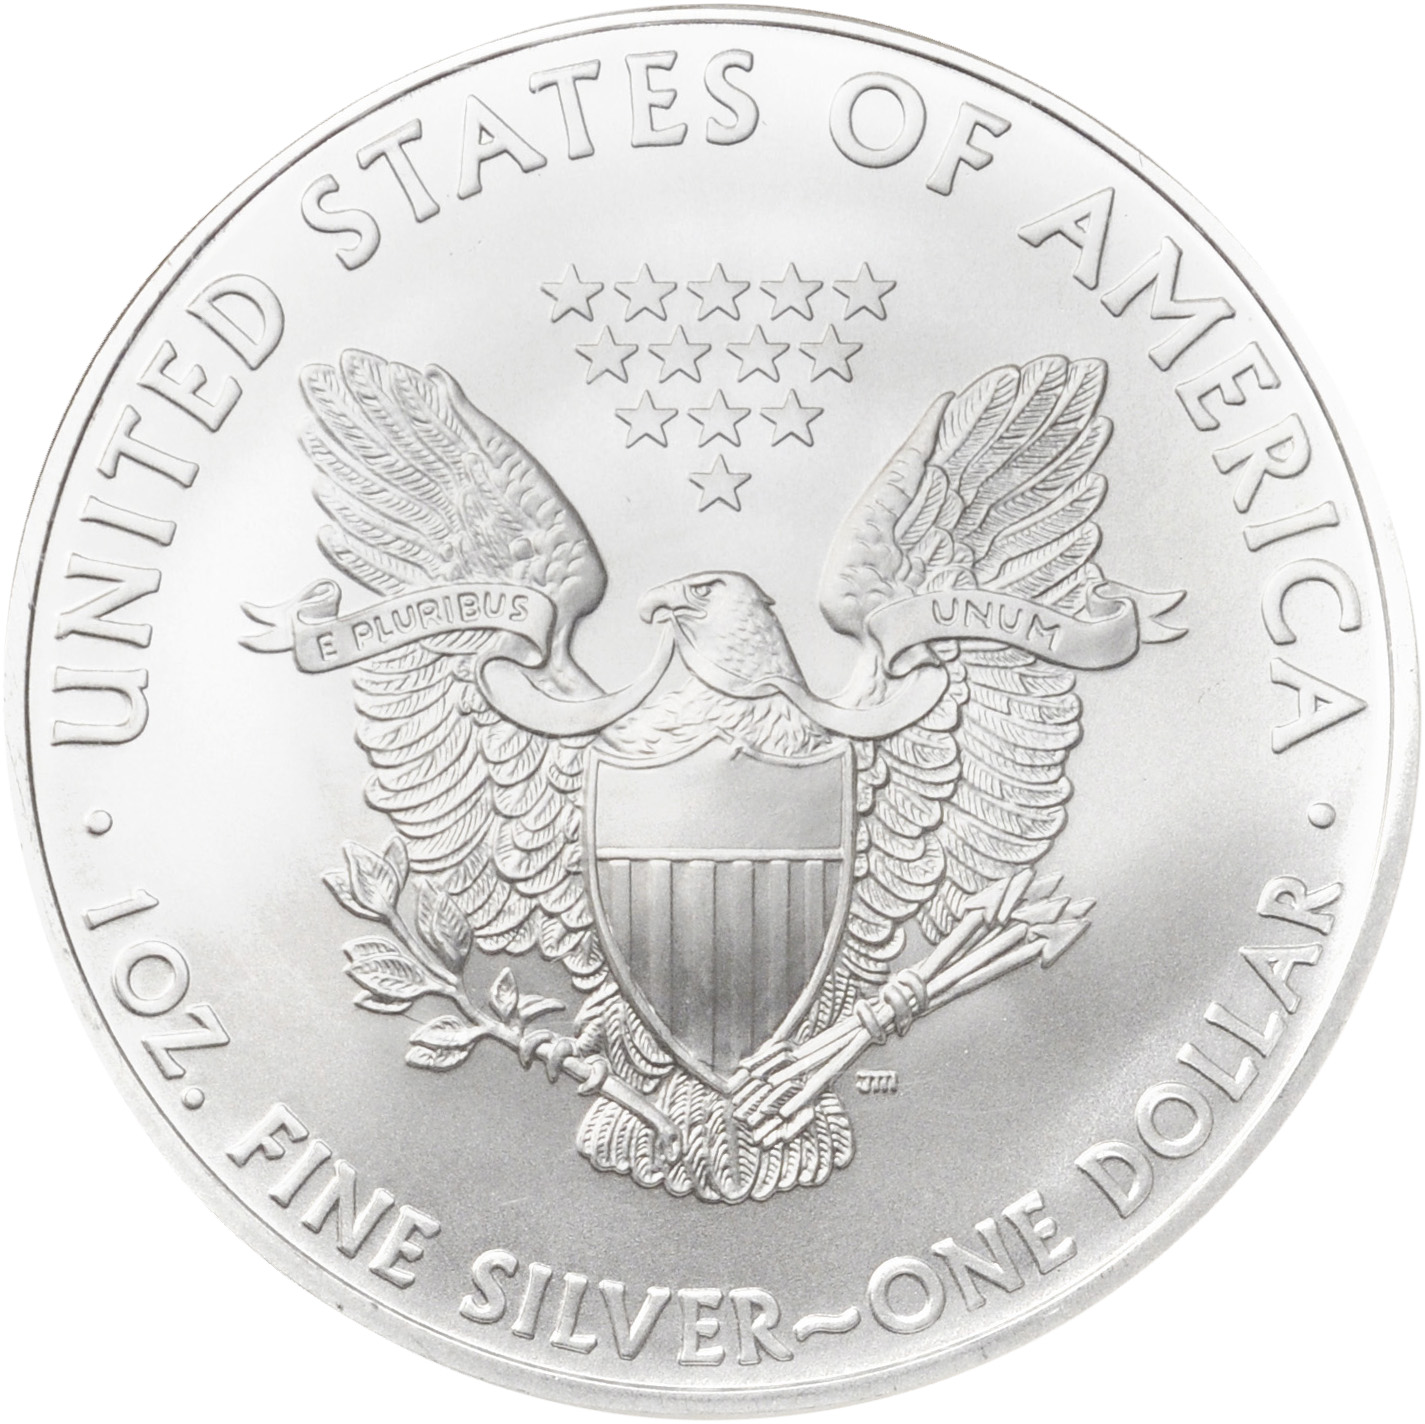 Value Of 2009 $1 Silver Coin